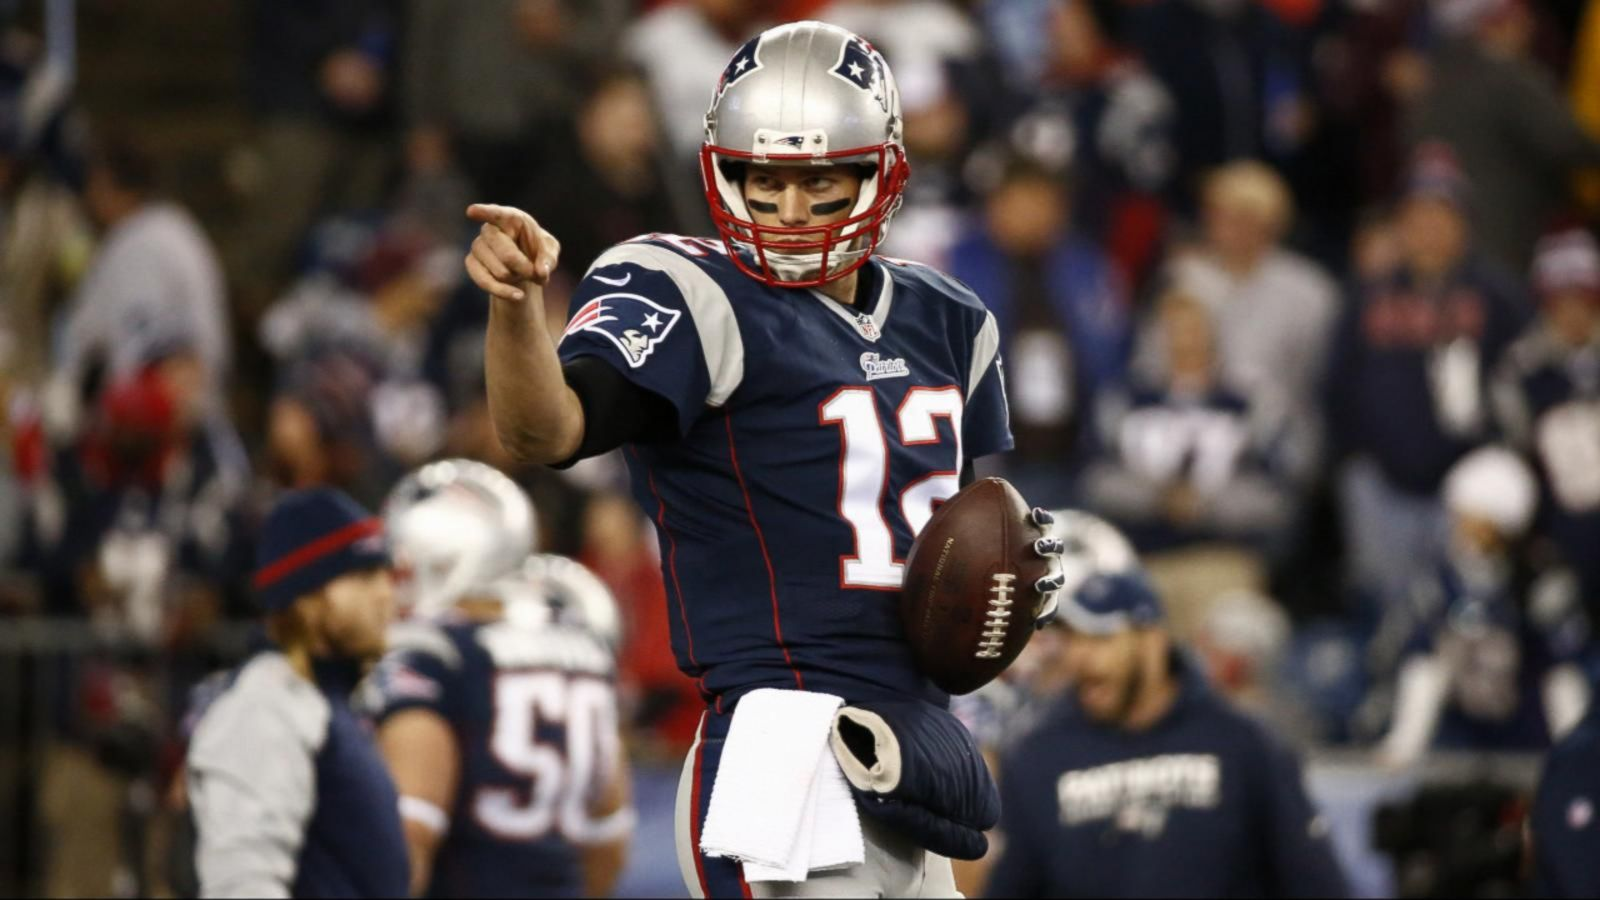 Deflategate: NFL Probing Whether New England Patriots Used Deflated Balls -  ABC News